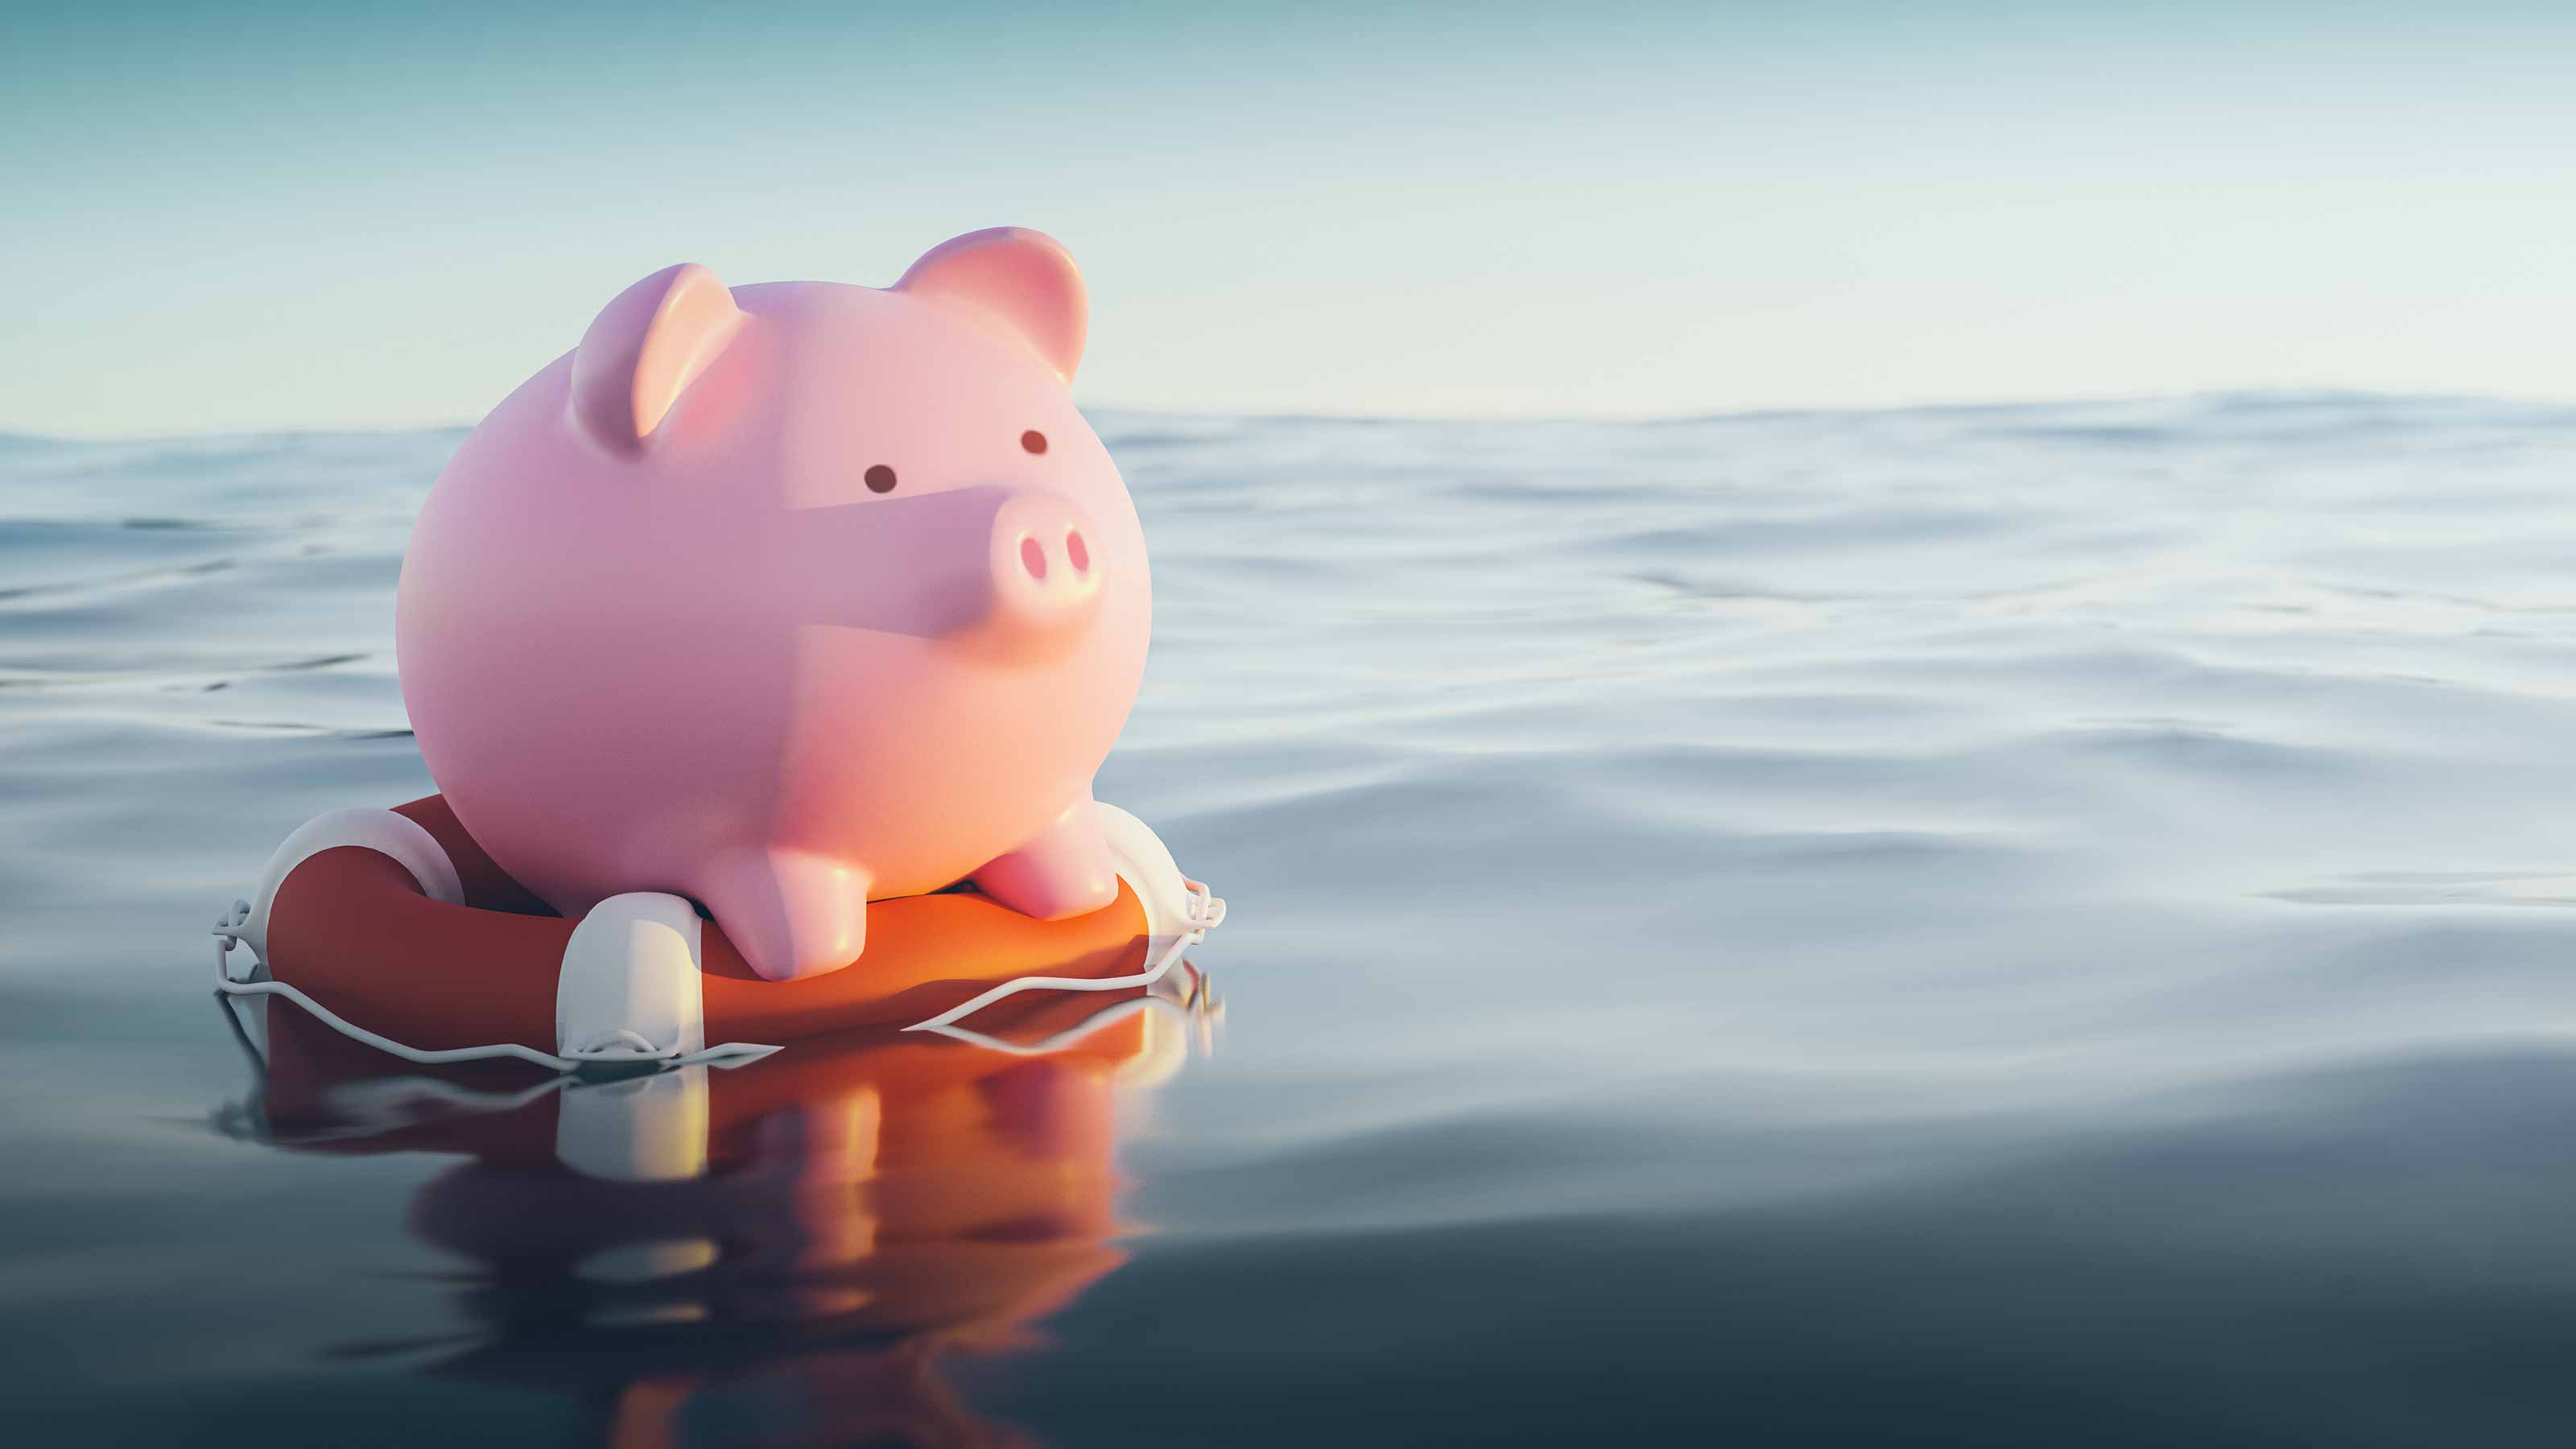 Piggybank floating in water on a life preserver.